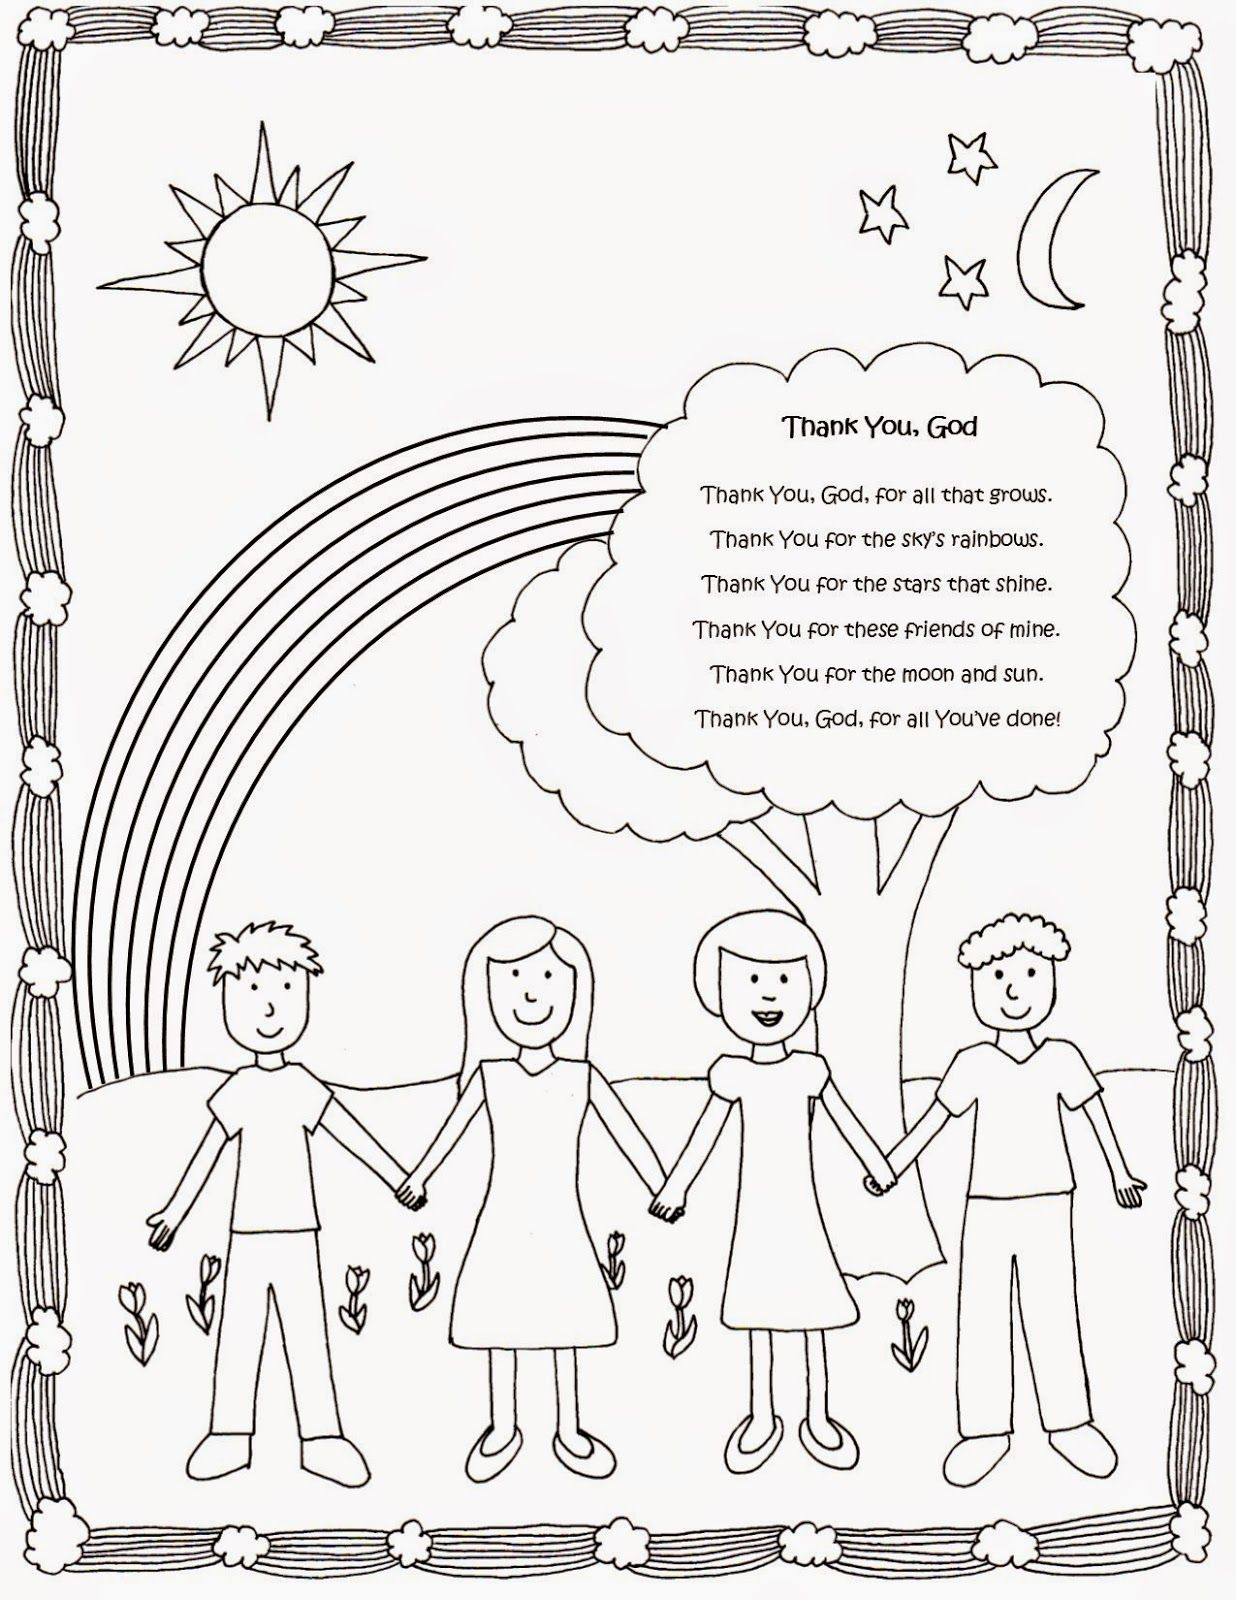 God Made Me Coloring Page Children Coloring Sunday School Coloring Pages Bible Verse Coloring Page Bible Coloring Pages